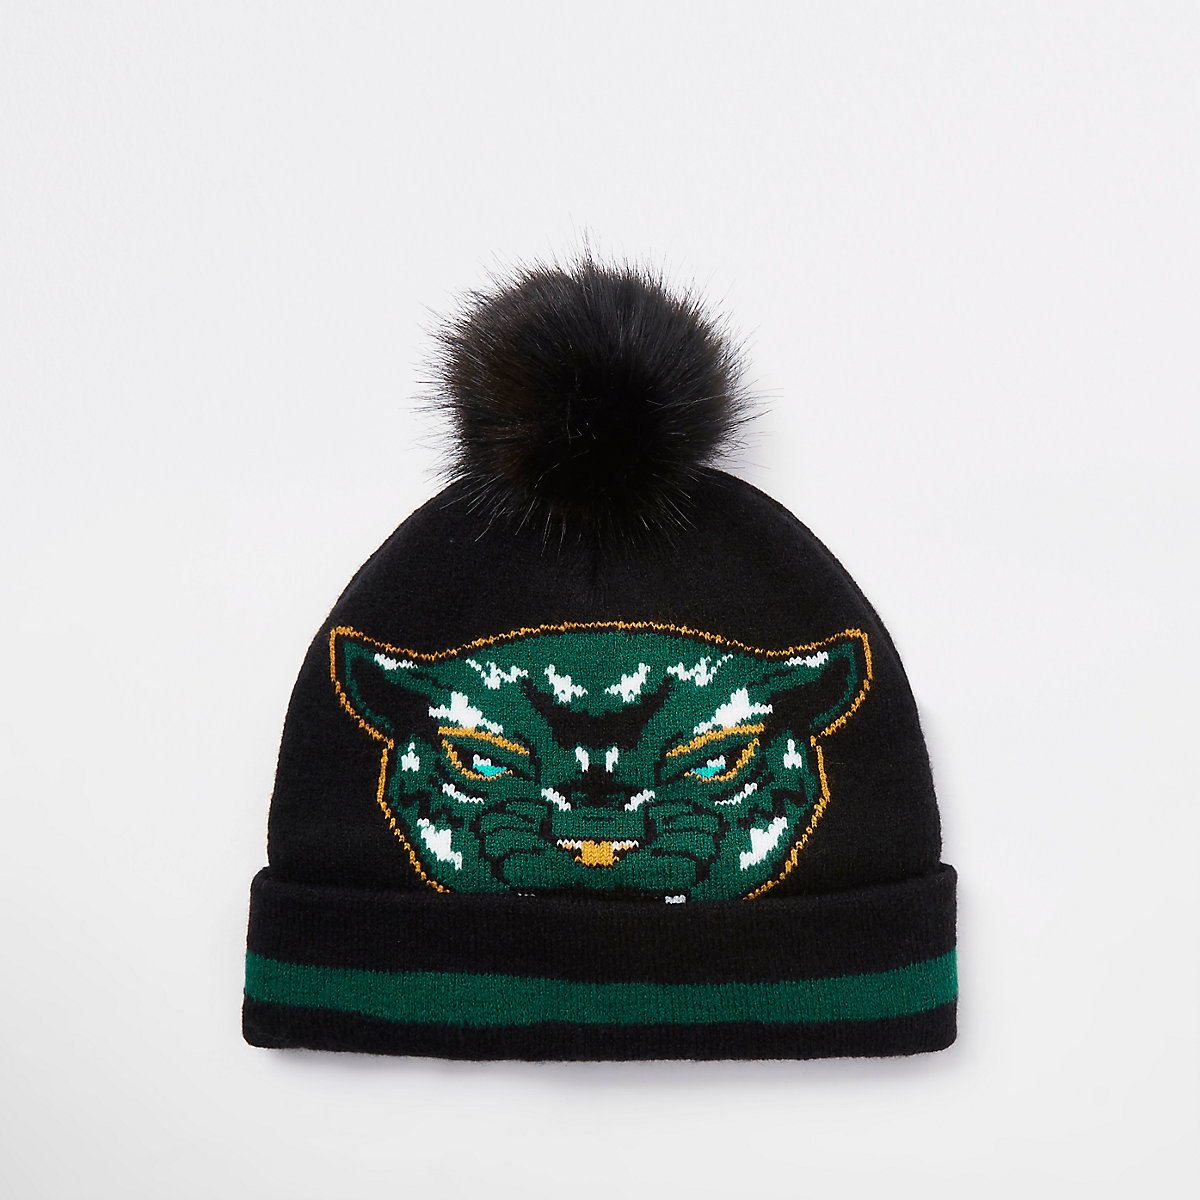 Boys Black Panther faux fur beanie hat - Hats - Accessories - boys 69ef2552f72